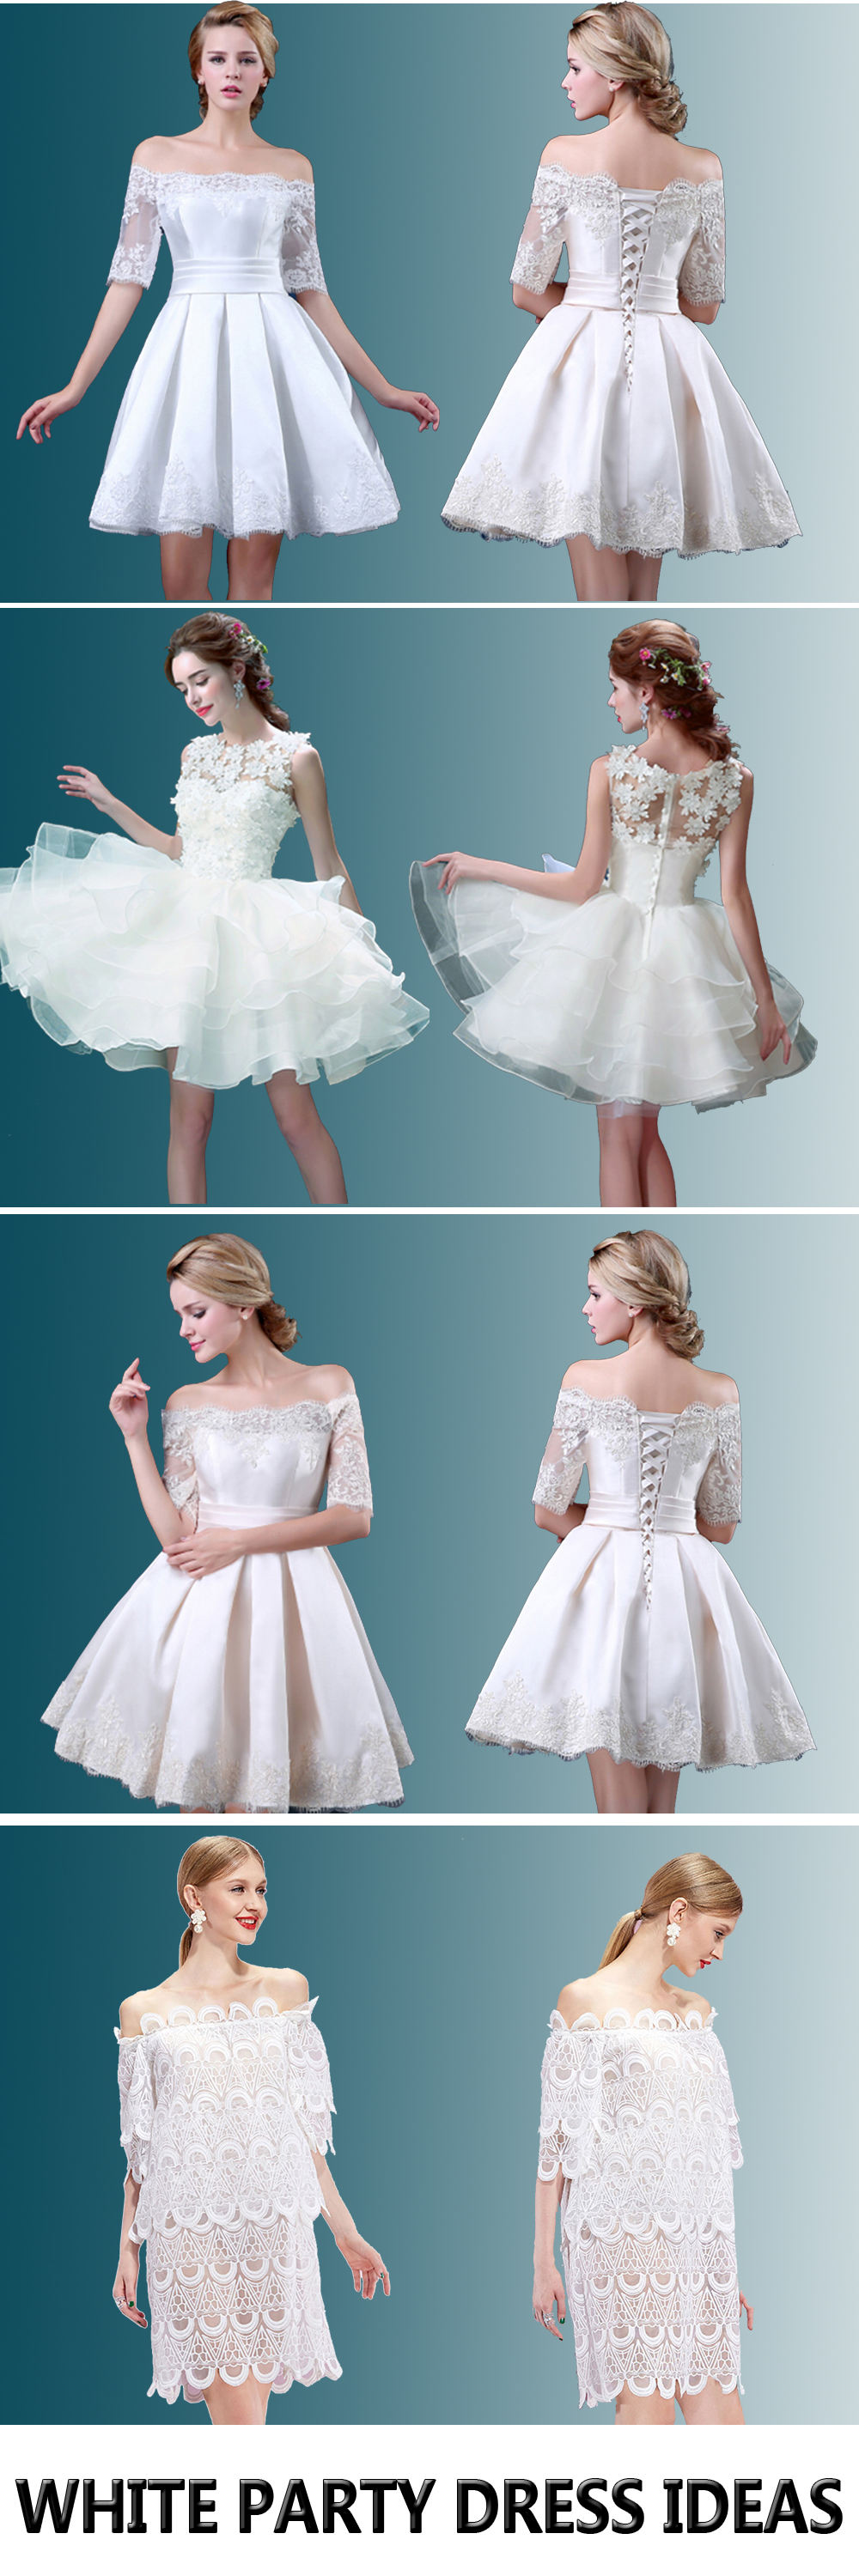 White party dresses ideas from #Choies.com! all kinds of elegant ...